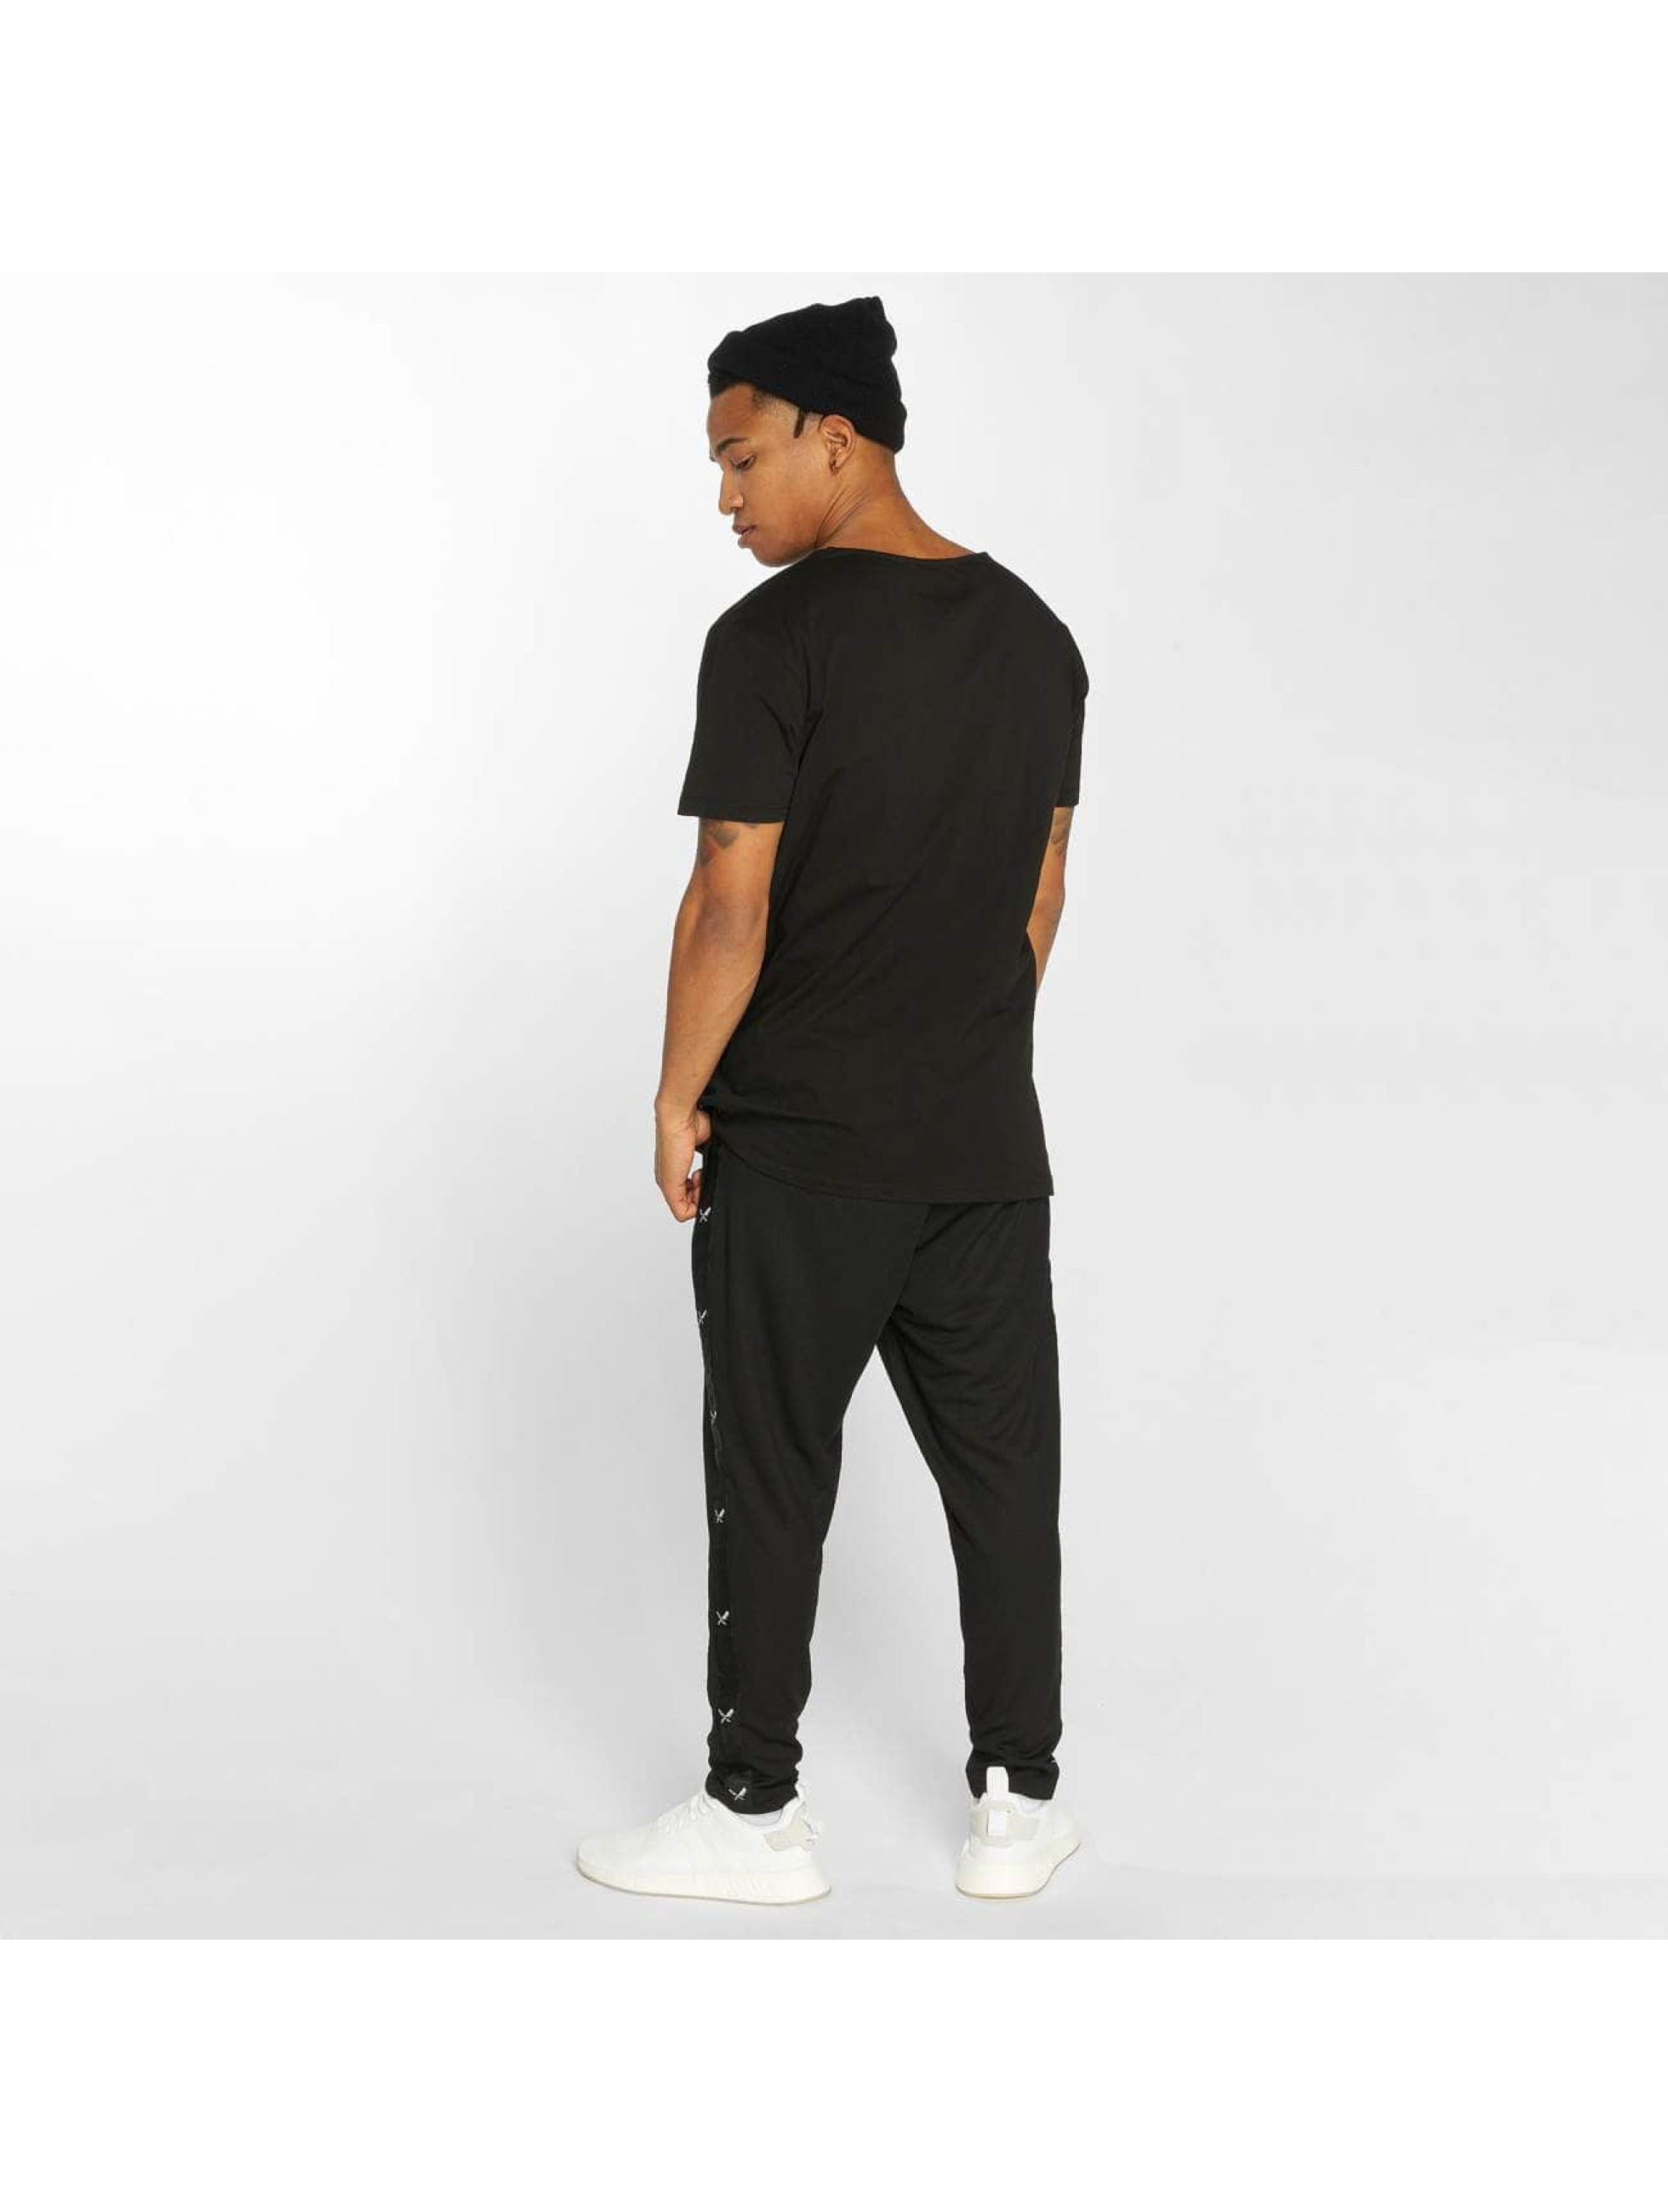 Distorted People T-Shirt Cutted black